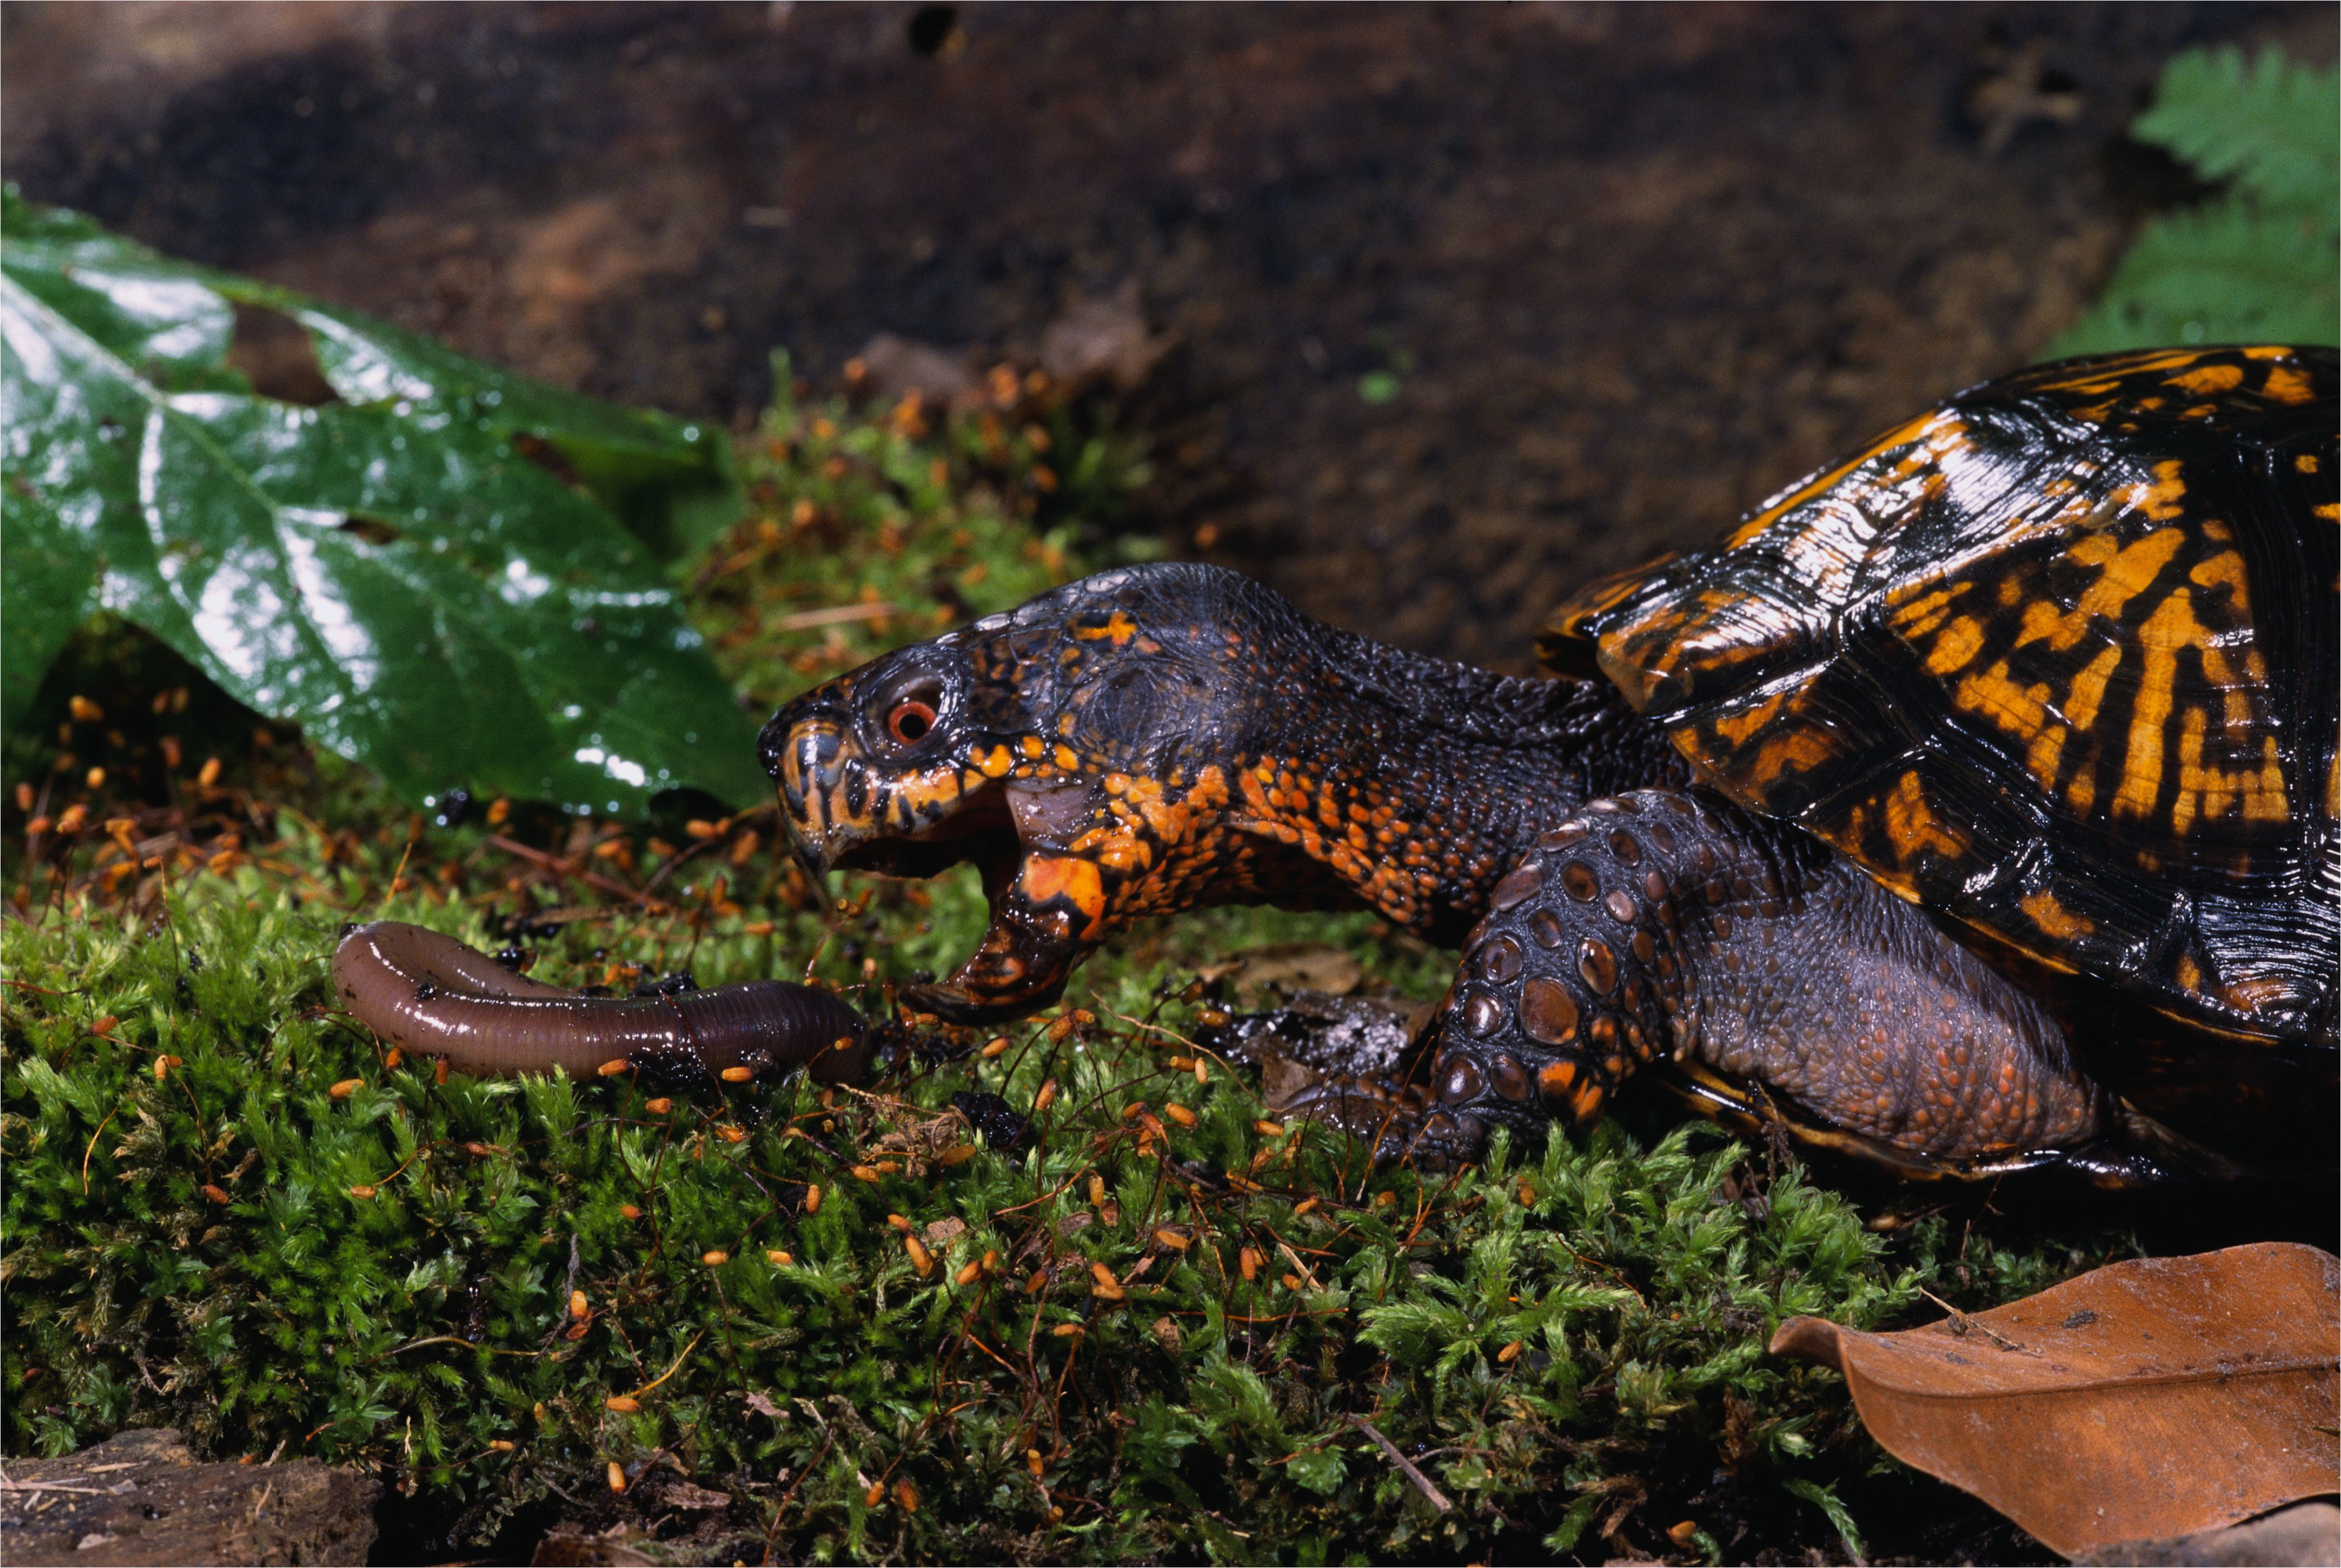 eastern box turtle preying on a worm